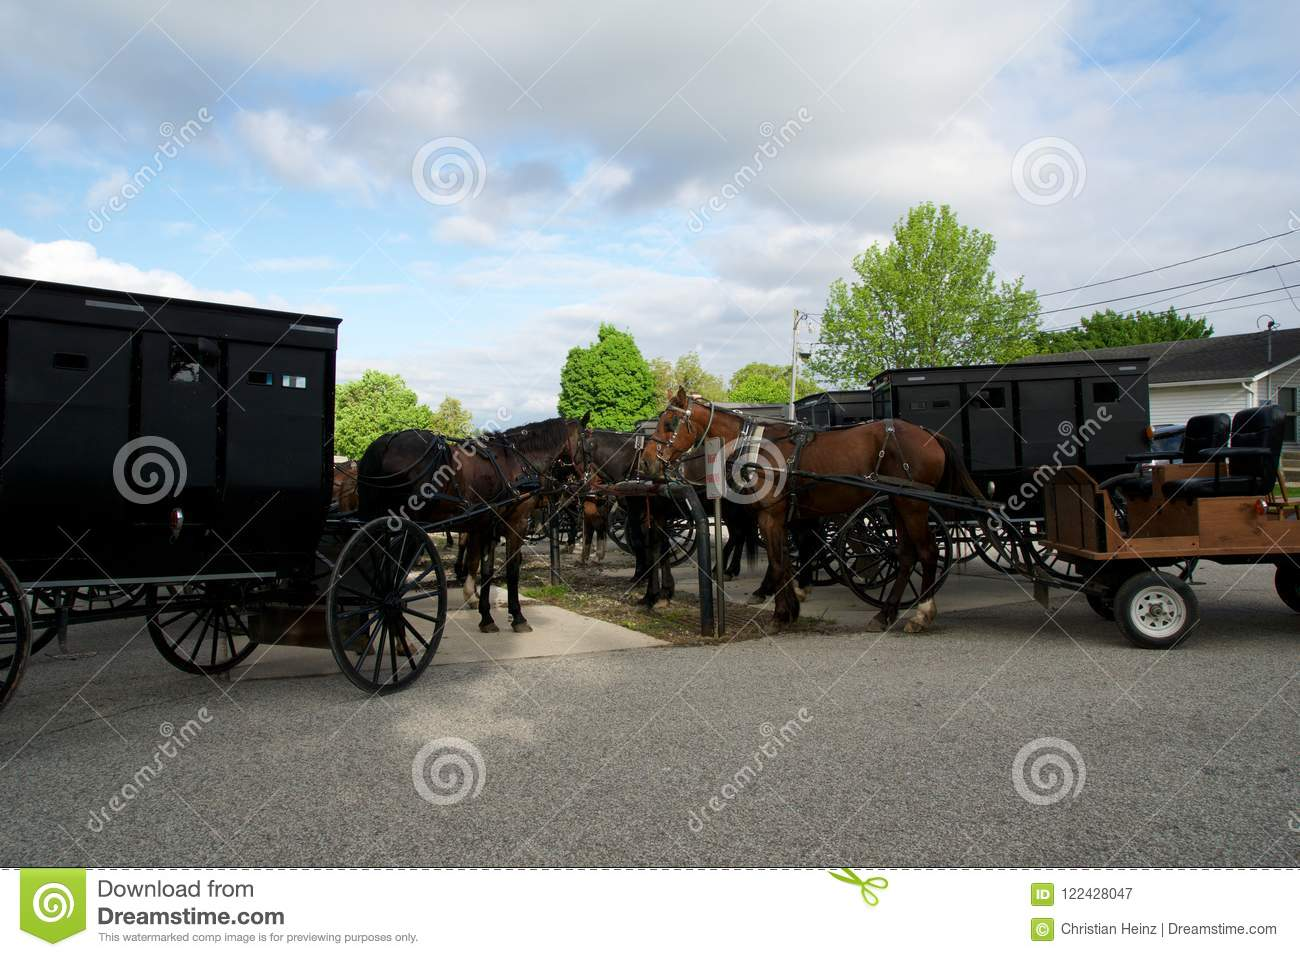 MIDDLEBURY, INDIANA, UNITED STATES - MAY 22nd, 2018: View of amish carriage along the city, known for simple living with